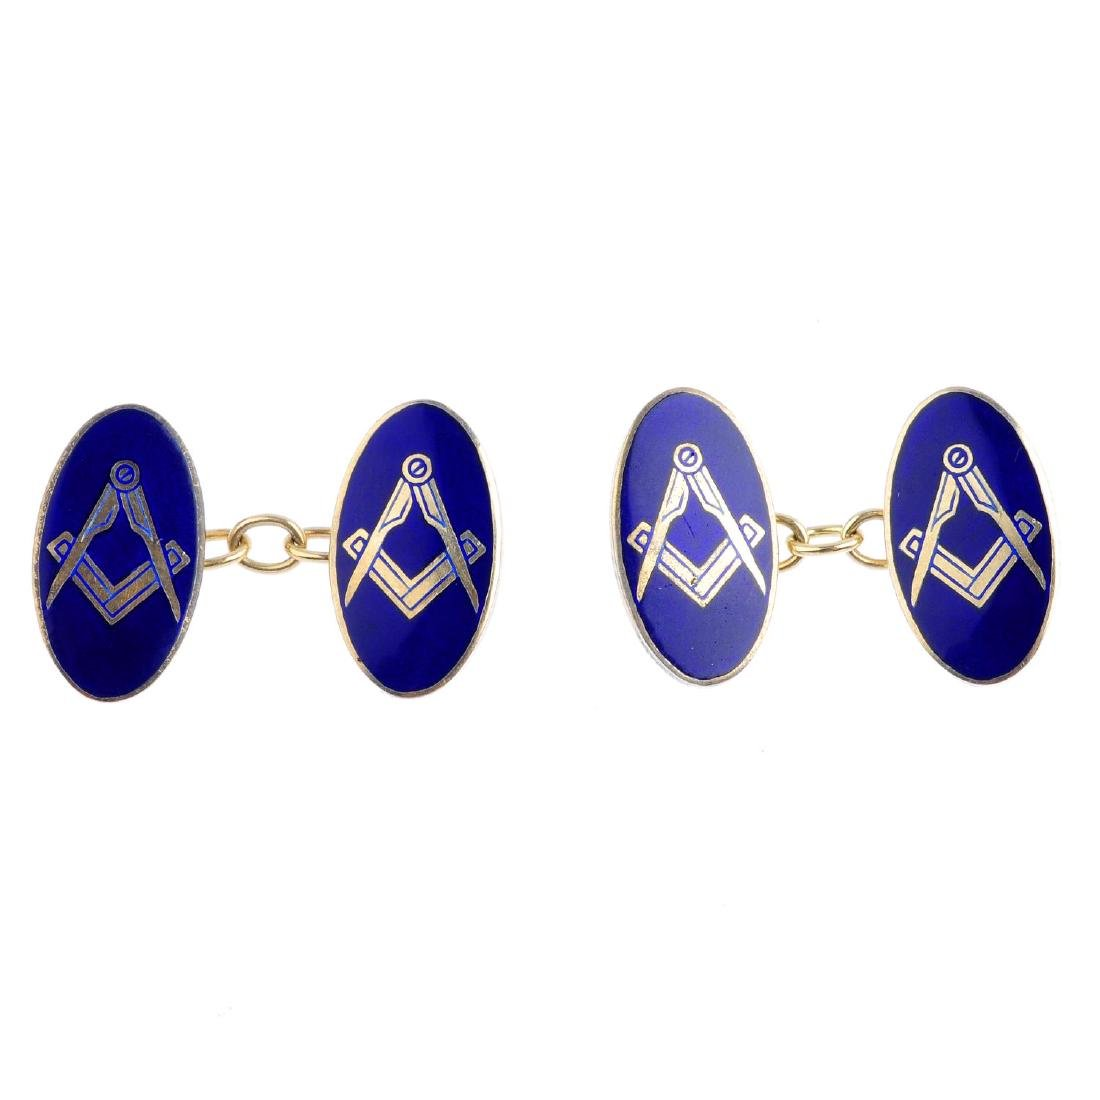 A 9ct gold enamel Masonic swivel ring and a pair of 9ct